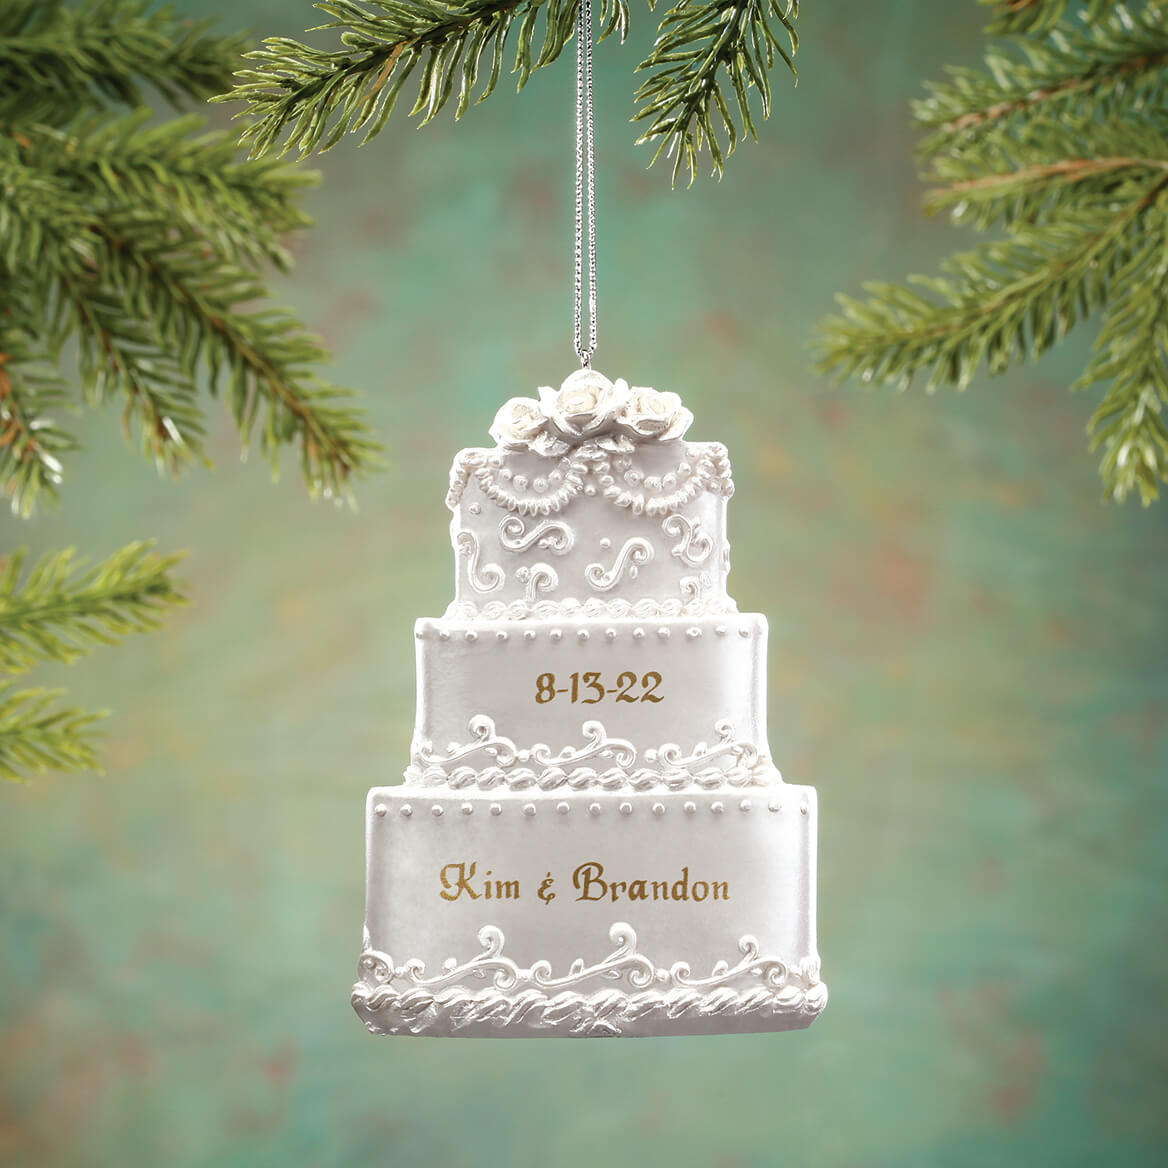 Personalized Wedding Cake Ornament  Christmas  Miles Kimball